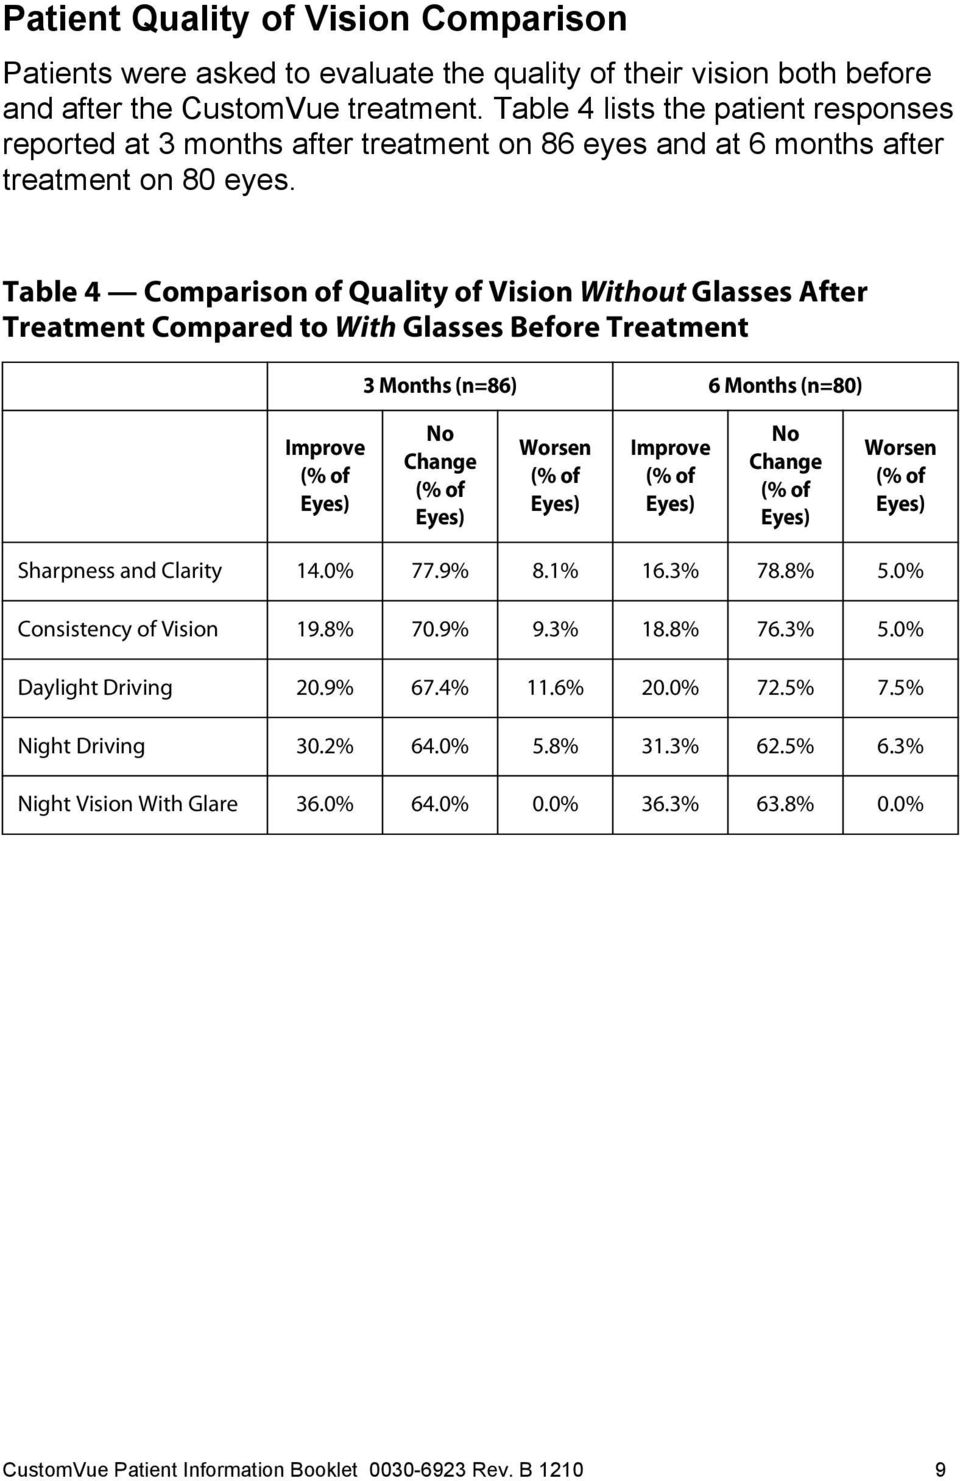 Table 4 Comparison of Quality of Vision Without Glasses After Treatment Compared to With Glasses Before Treatment 3 Months (n=86) 6 Months (n=80) Improve (% of Eyes) No Change (% of Eyes) Worsen (%